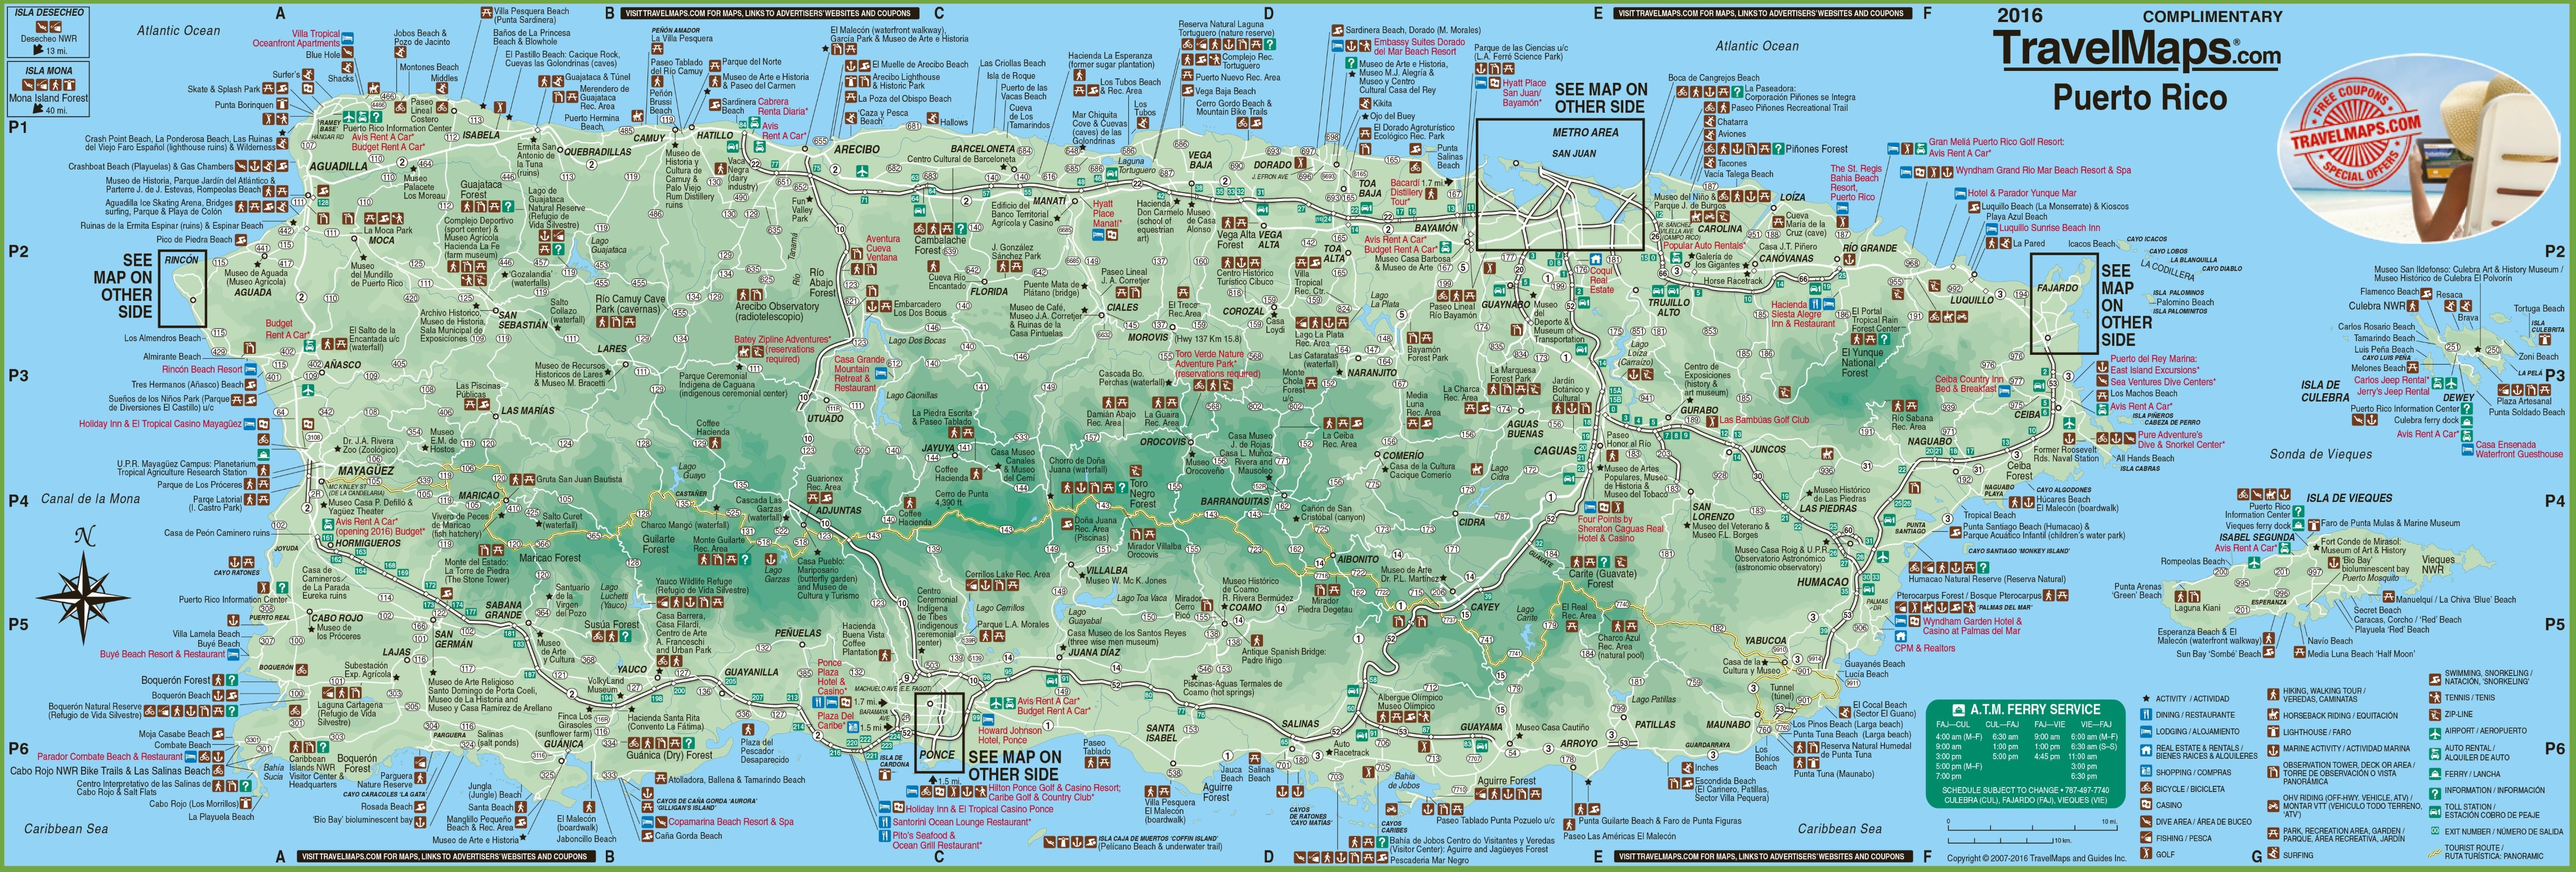 Puerto Rico Maps – Tourist Map Of San Juan Puerto Rico